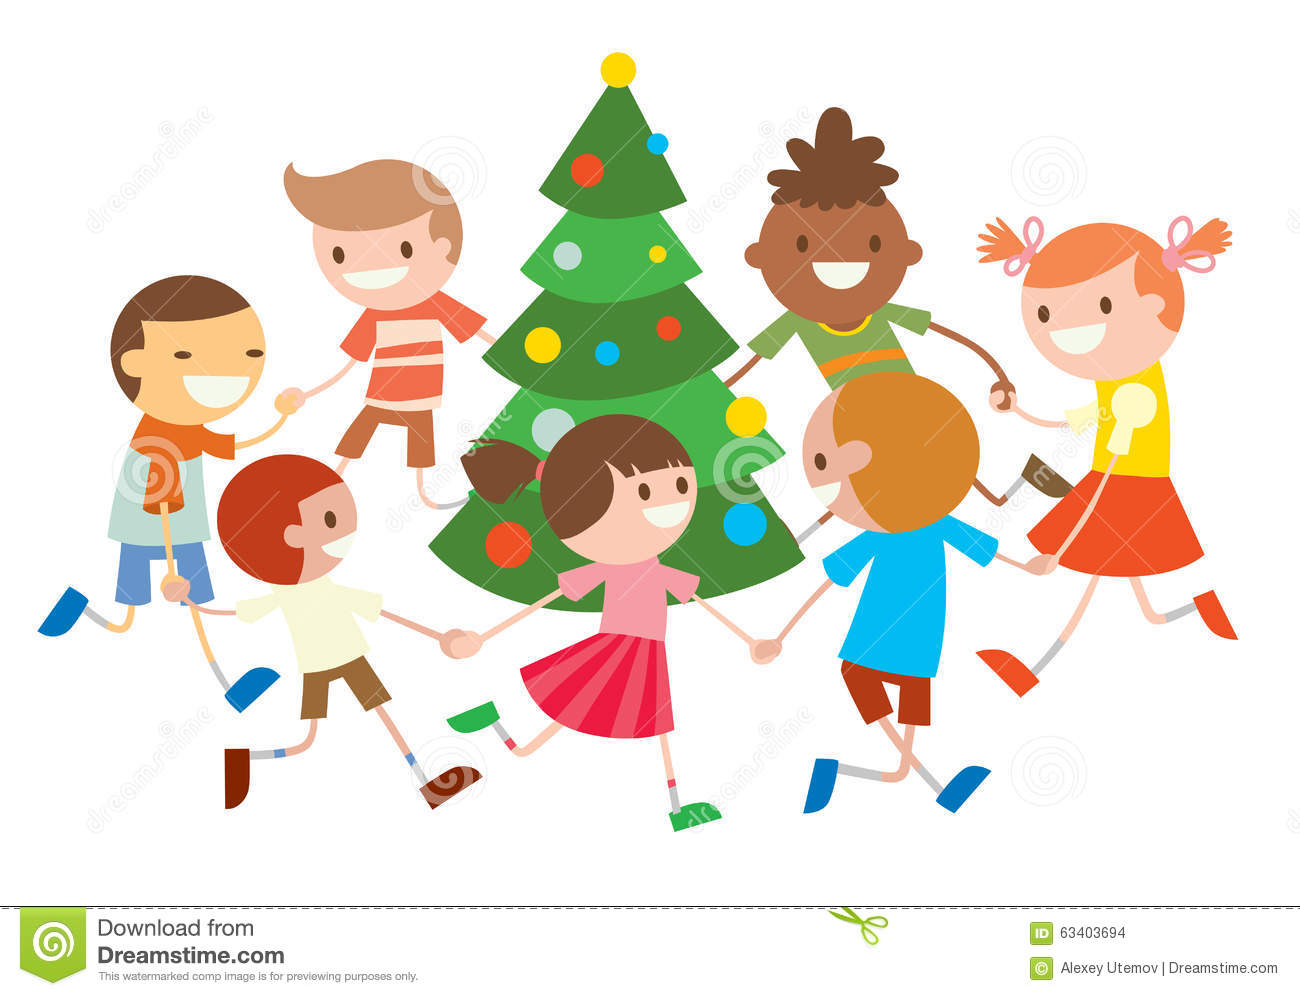 essay on christmas celebration for children Celebrate christmas cheer and holiday happiness with brand new journal prompts christmas writing ideas for kids 54 fabulous and fun ideas what is the christmas spirit all about if you could give a gift to the world, what would it be what would you do if you got to visit the north pole.